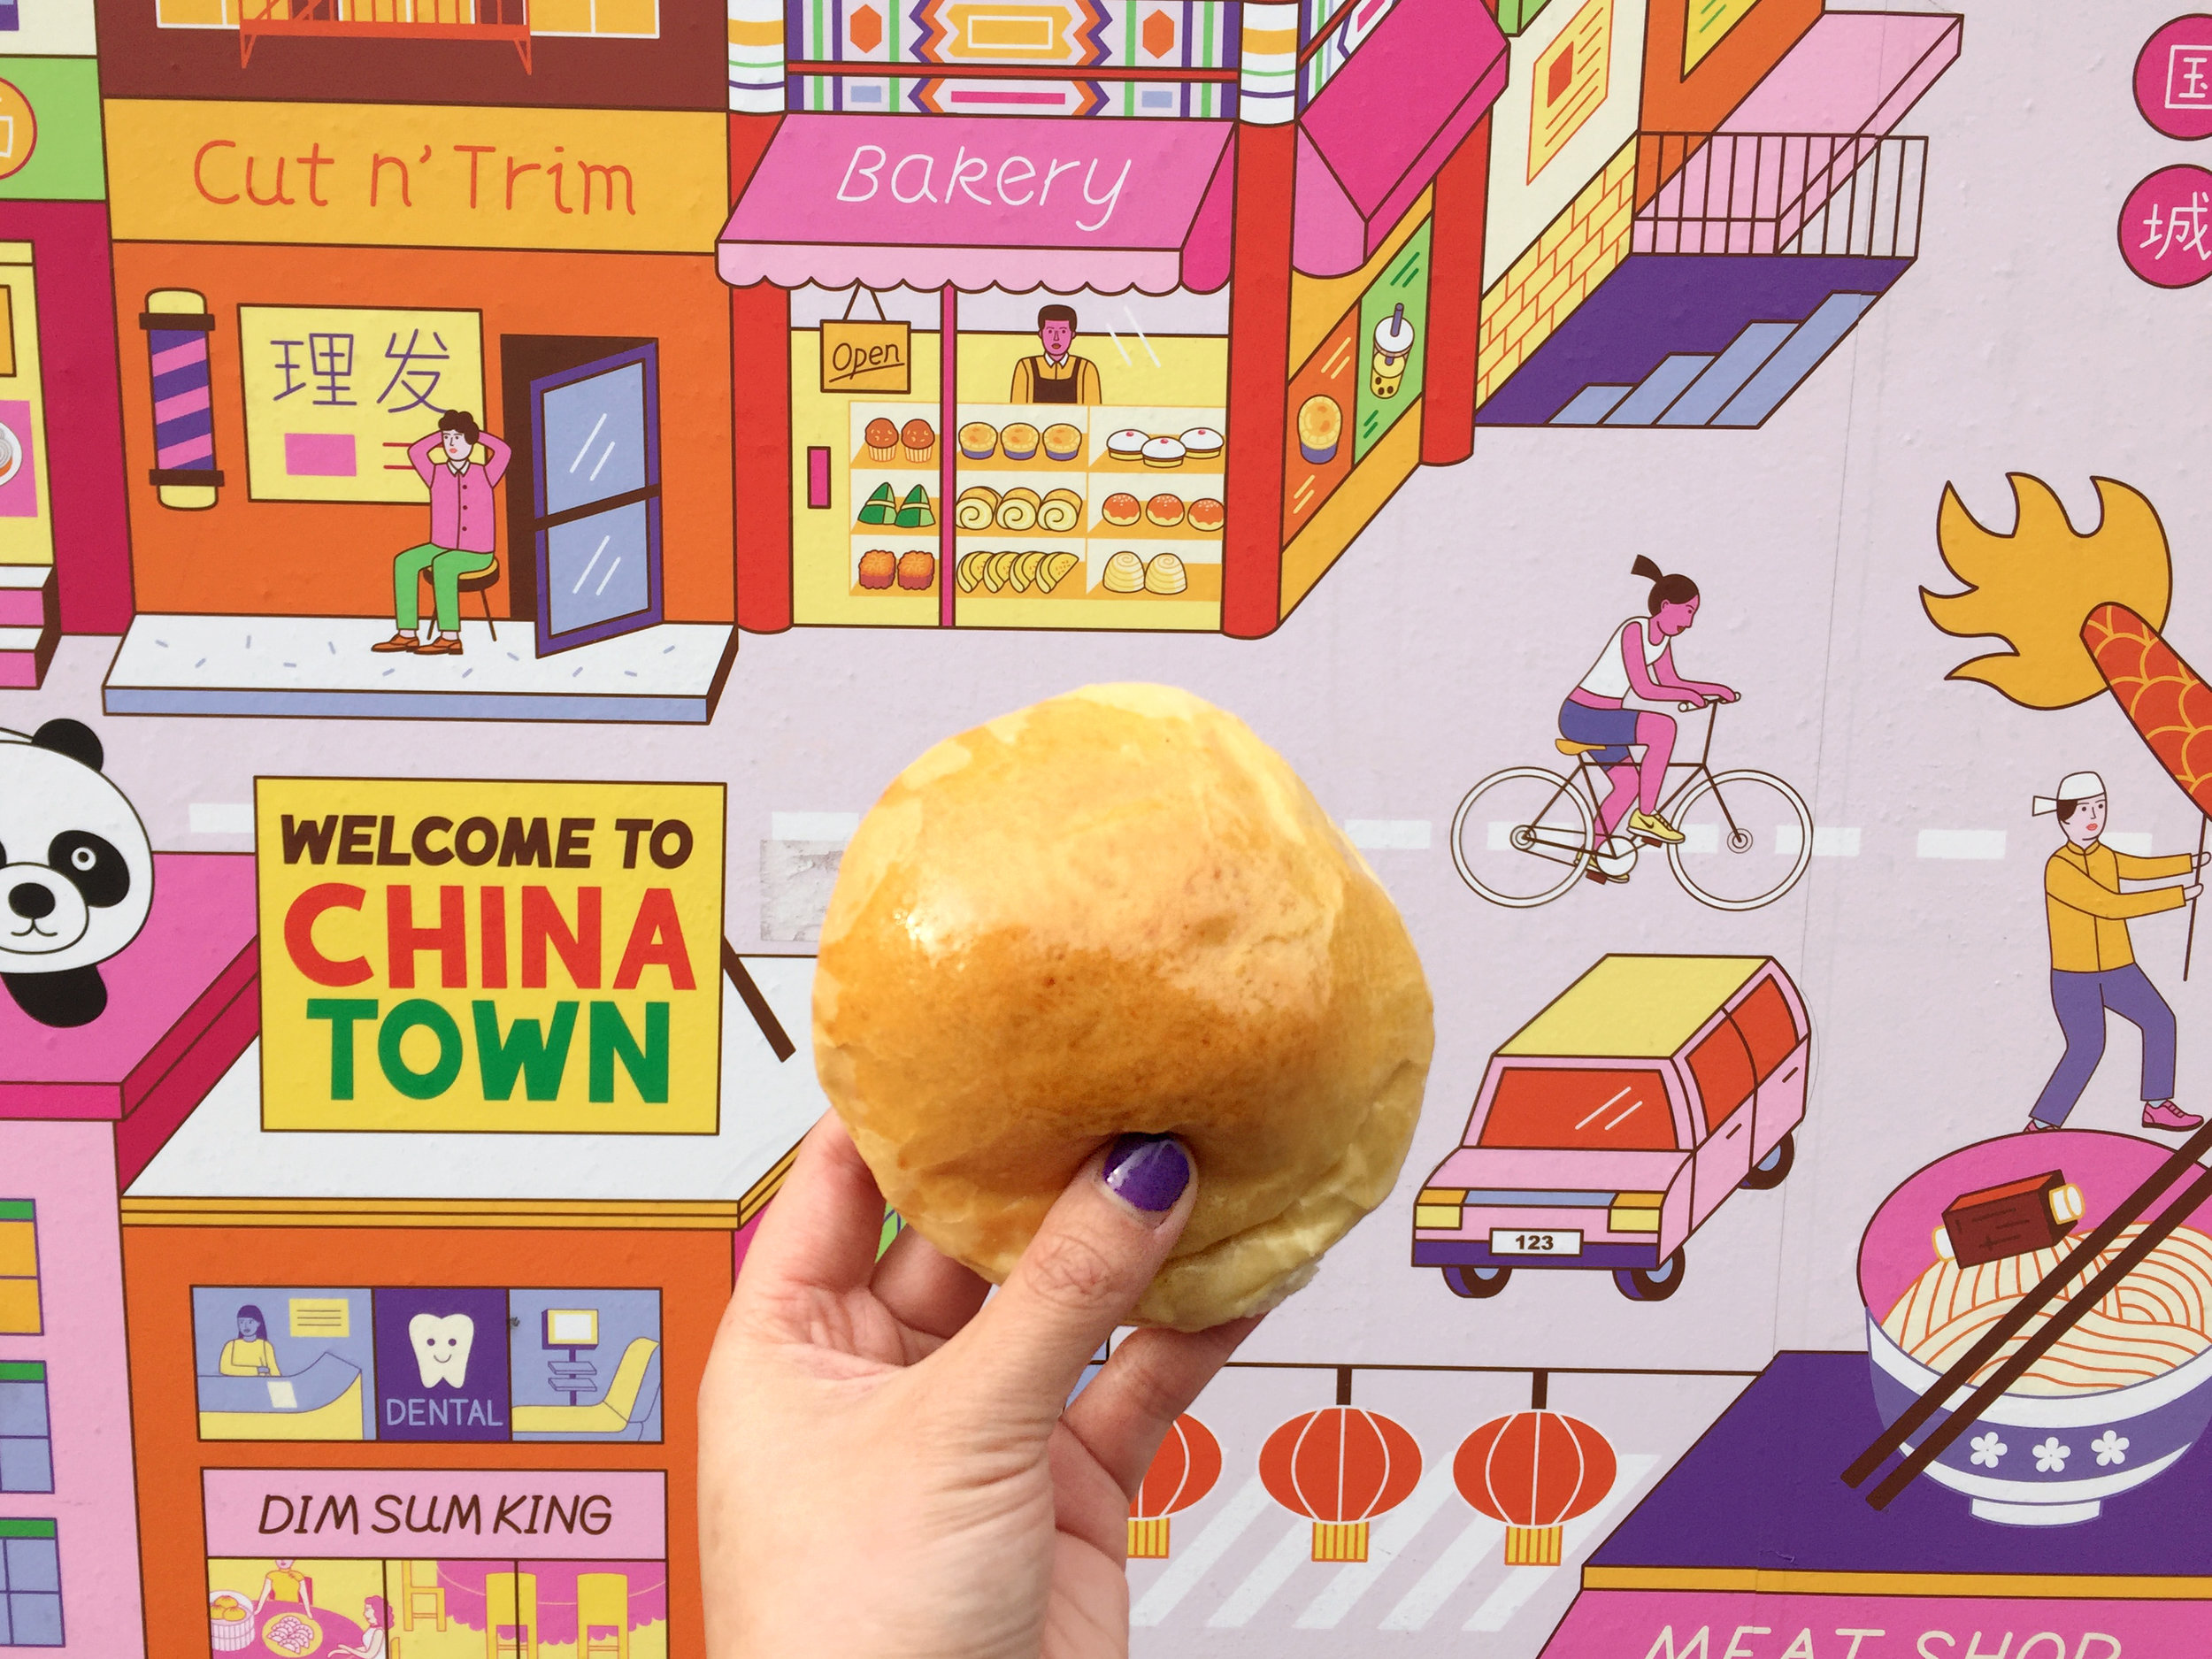 amy_chen_design_chinatown_nyc_food_guide_pork_bun.JPG